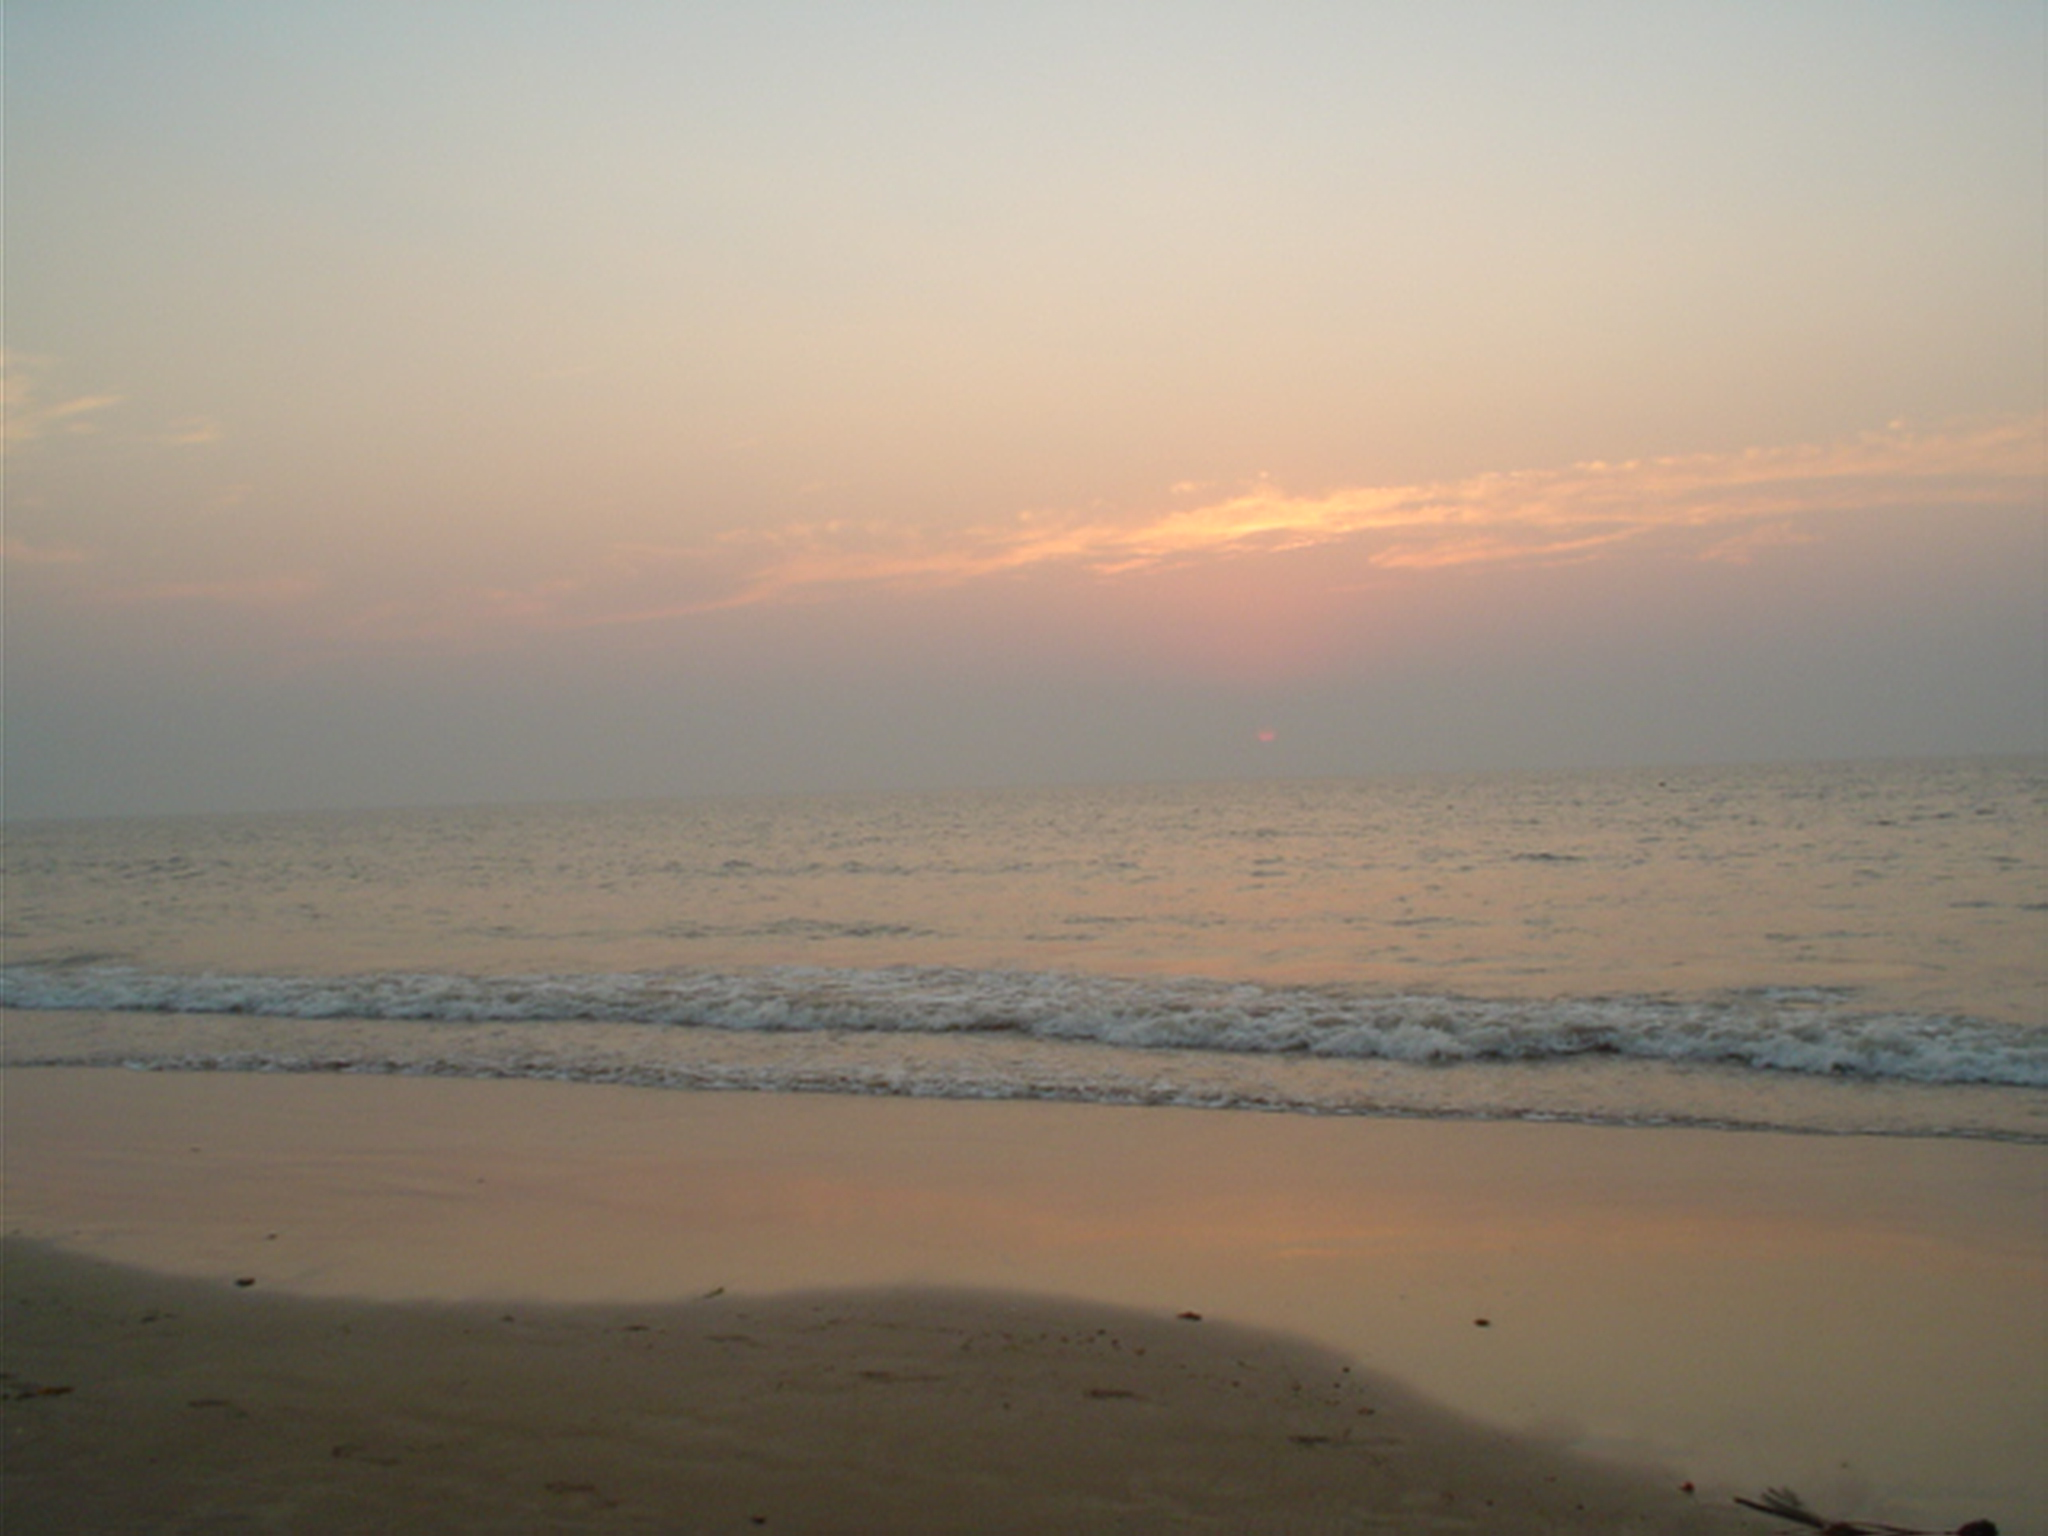 Evening-time photograph of Juhu beach